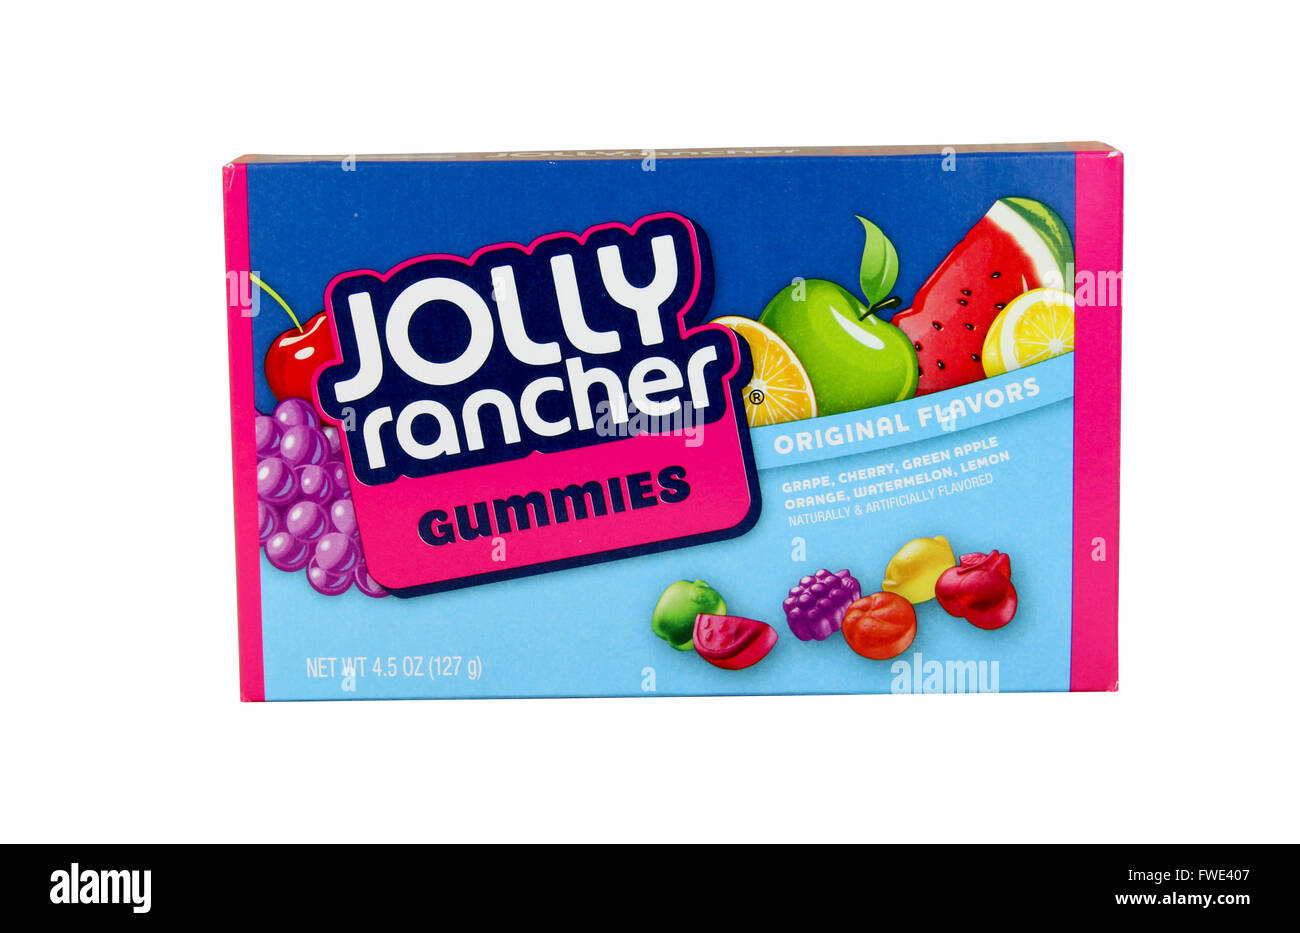 SPENCER , WISCONSIN, April,4, 2016 Box Of Joly Rancher